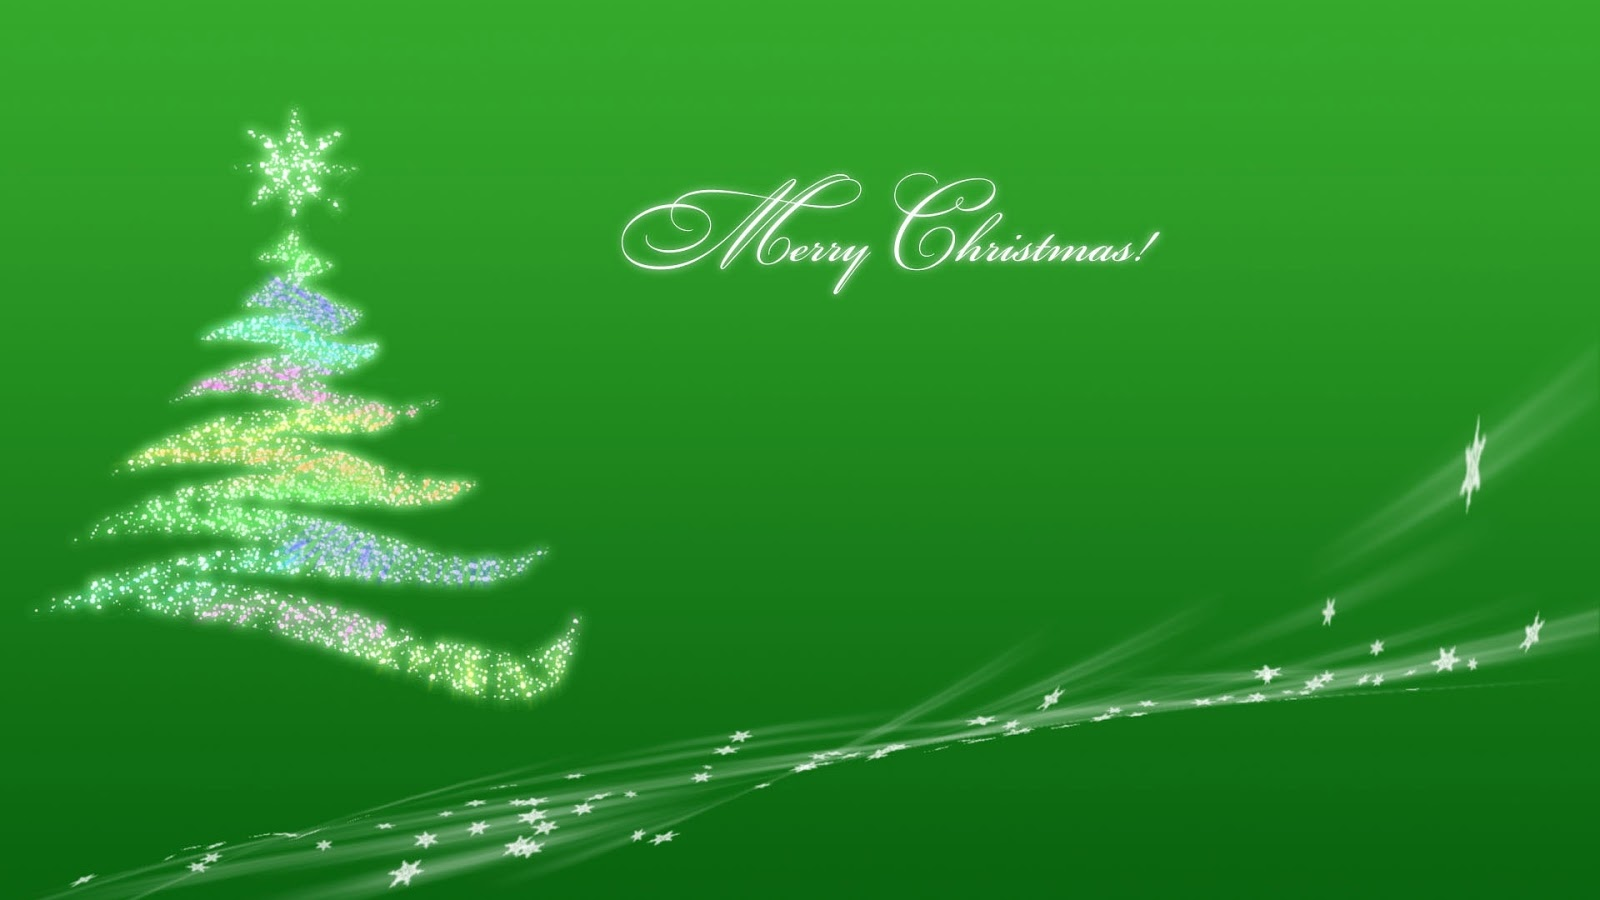 high definition wallpapers 1920x1080 christmas - photo #31